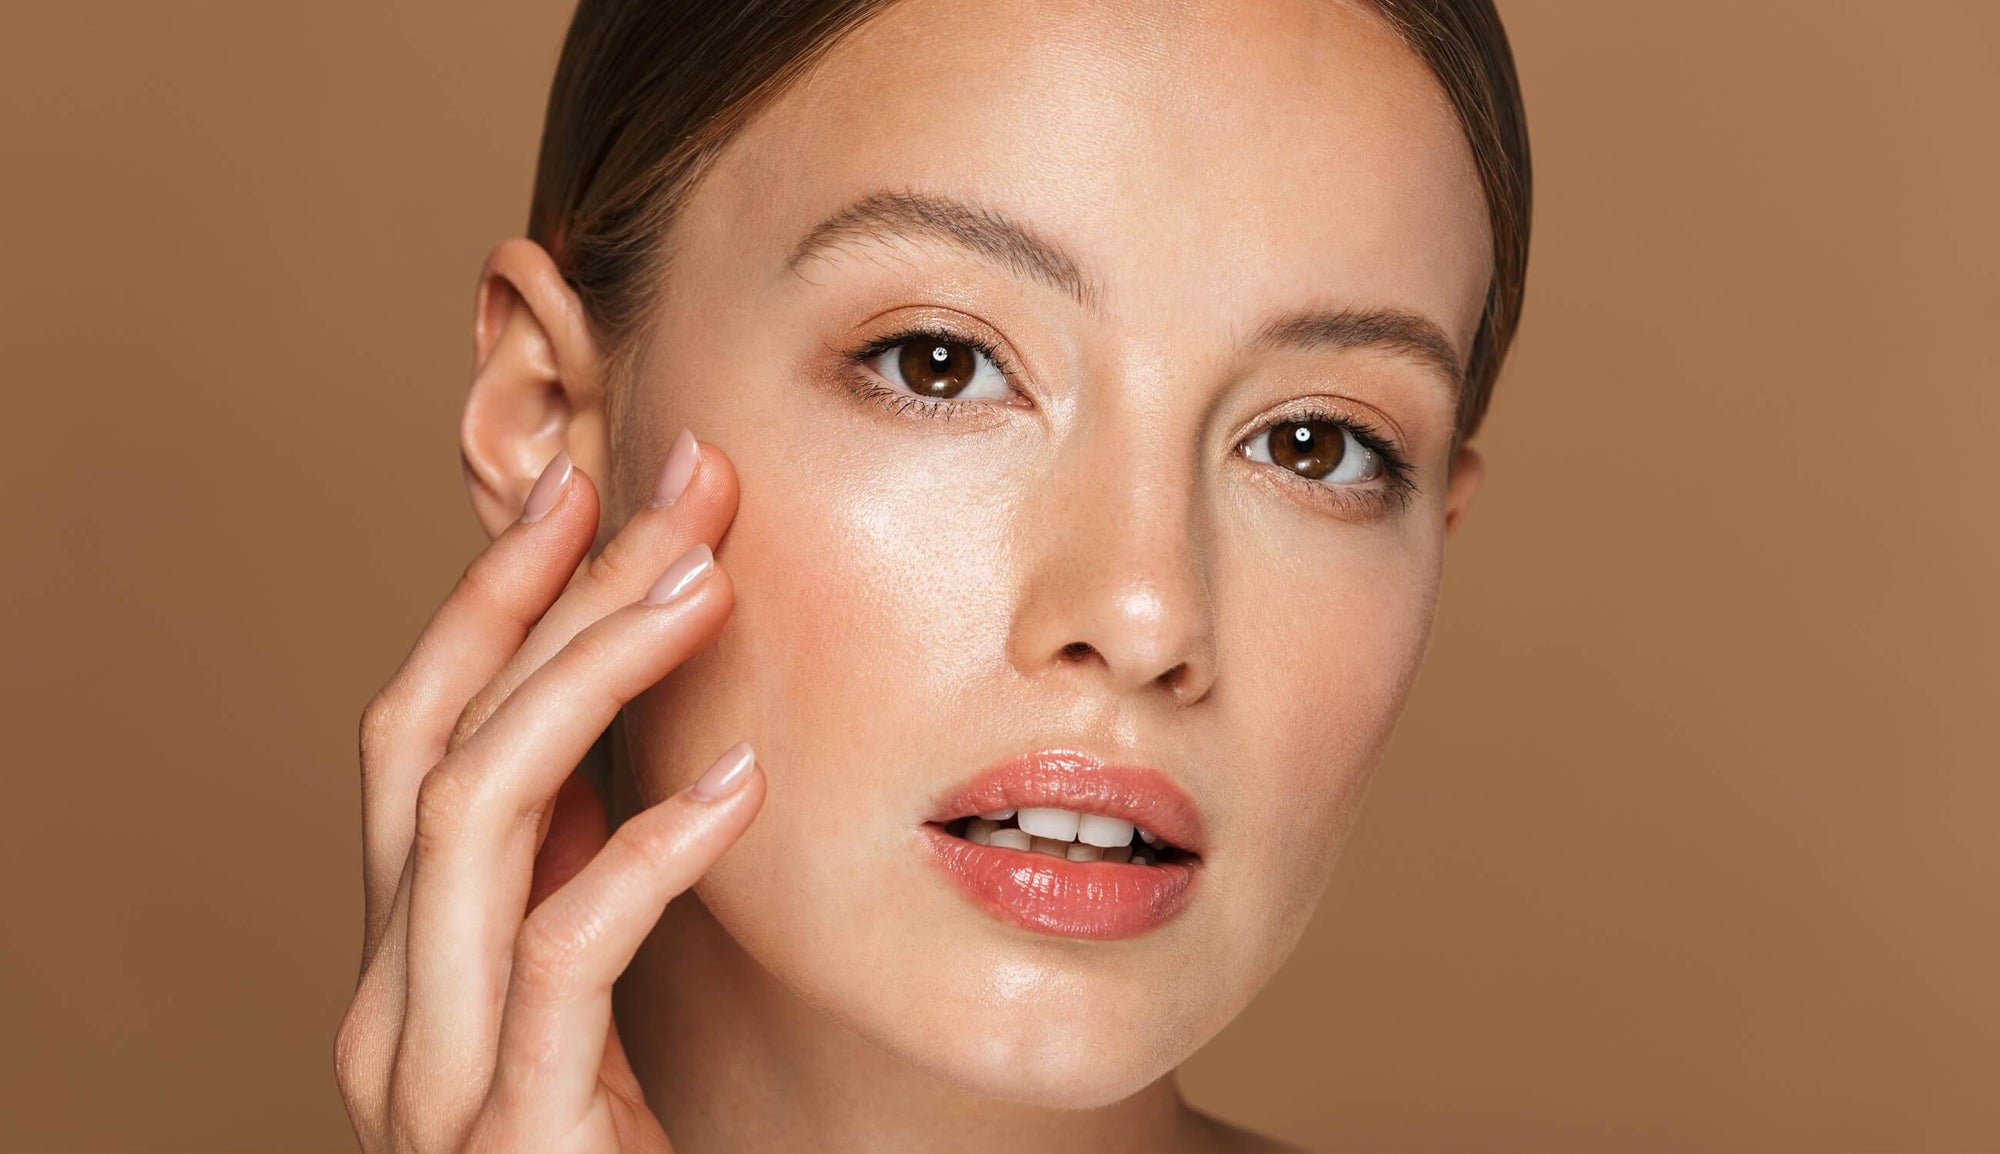 6 ESSENTIAL AUTUMN SKINCARE TIPS